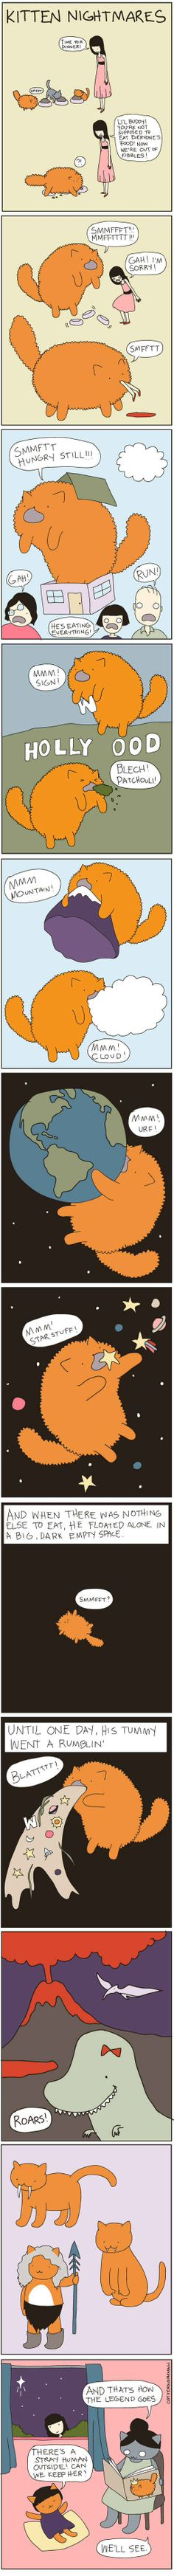 How Cats Plan On Taking Over The Universe Don't feed them too much! A comic strip from Cat Versus Human.